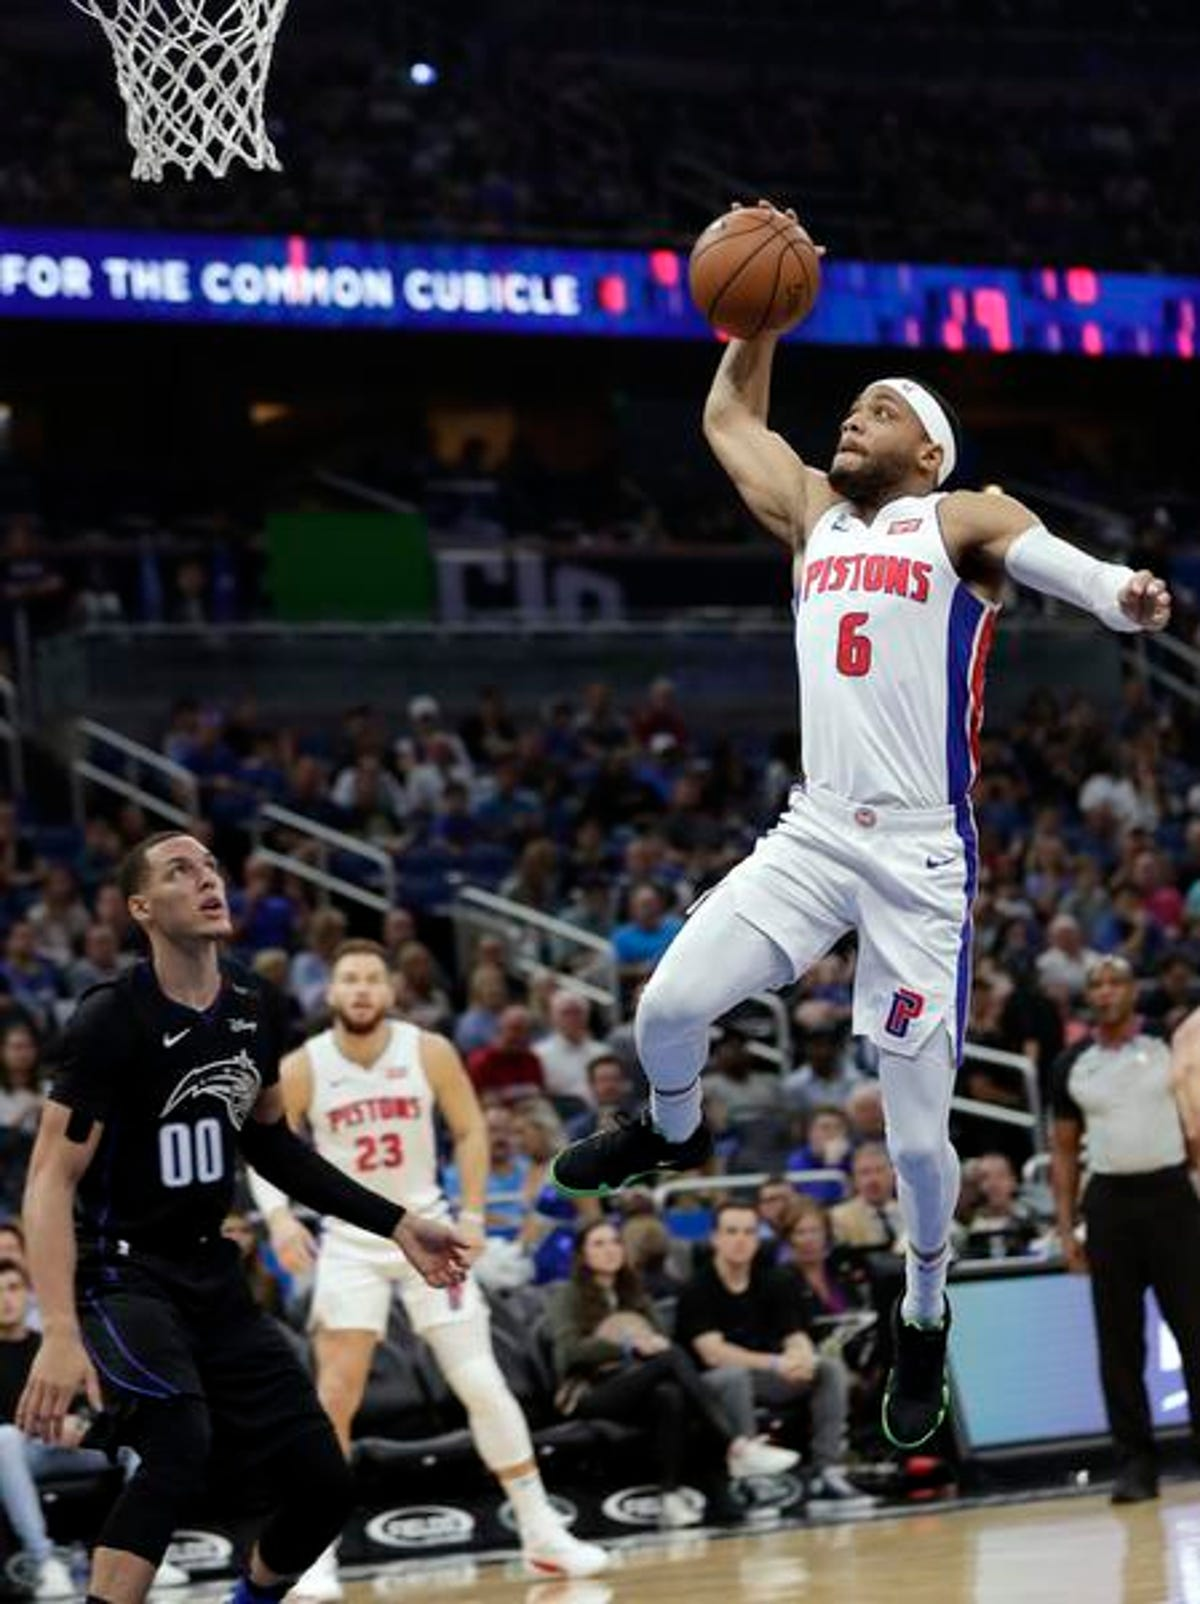 MINUTES ARE TAKING A TOLL ON PISTONS BROWN